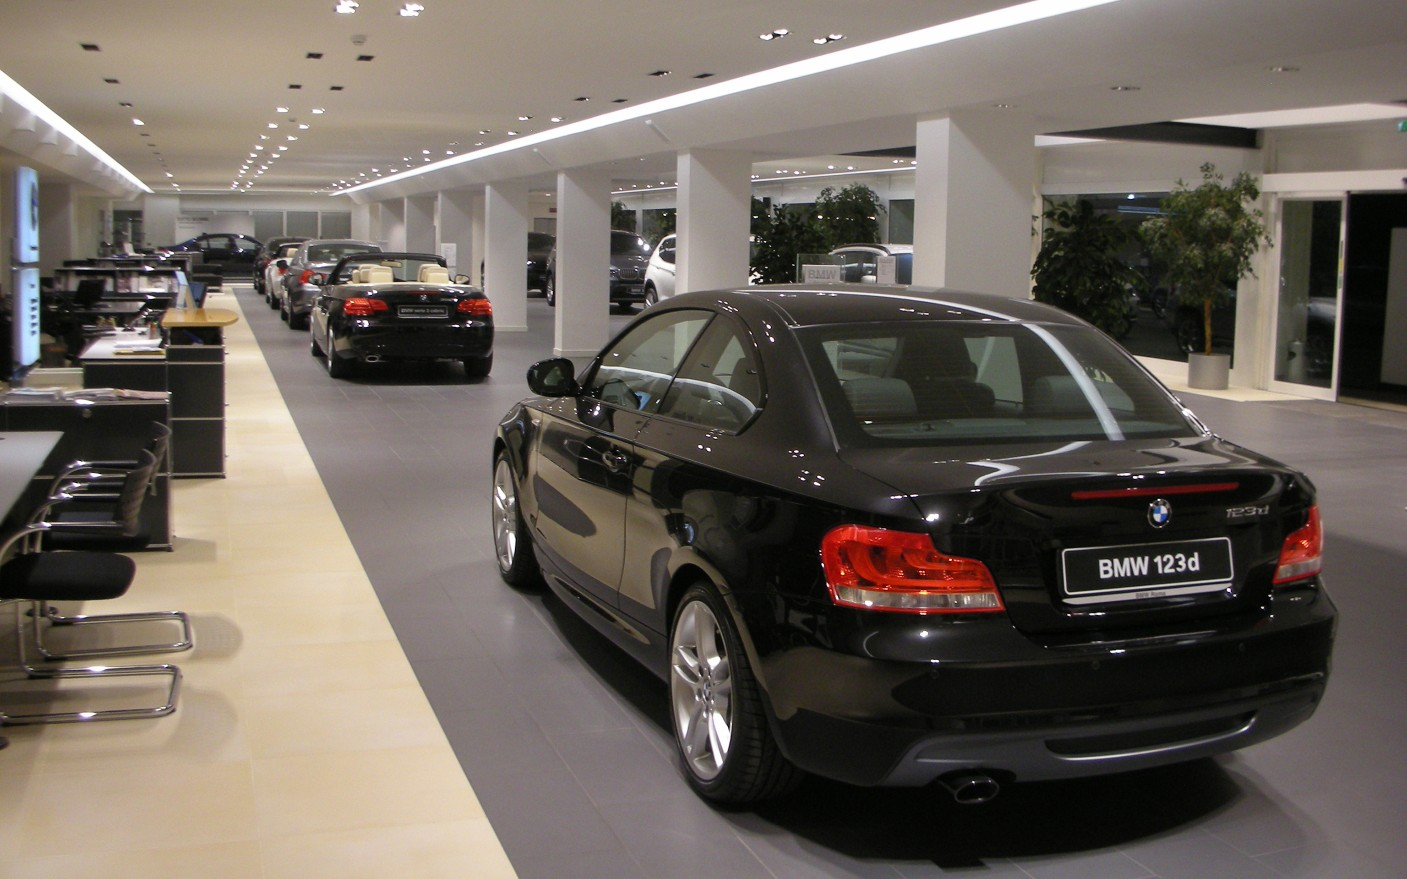 Opting for a warm 3000K color temperature, Comparotto mounted the luminaires in linear lines throughout the showroom.